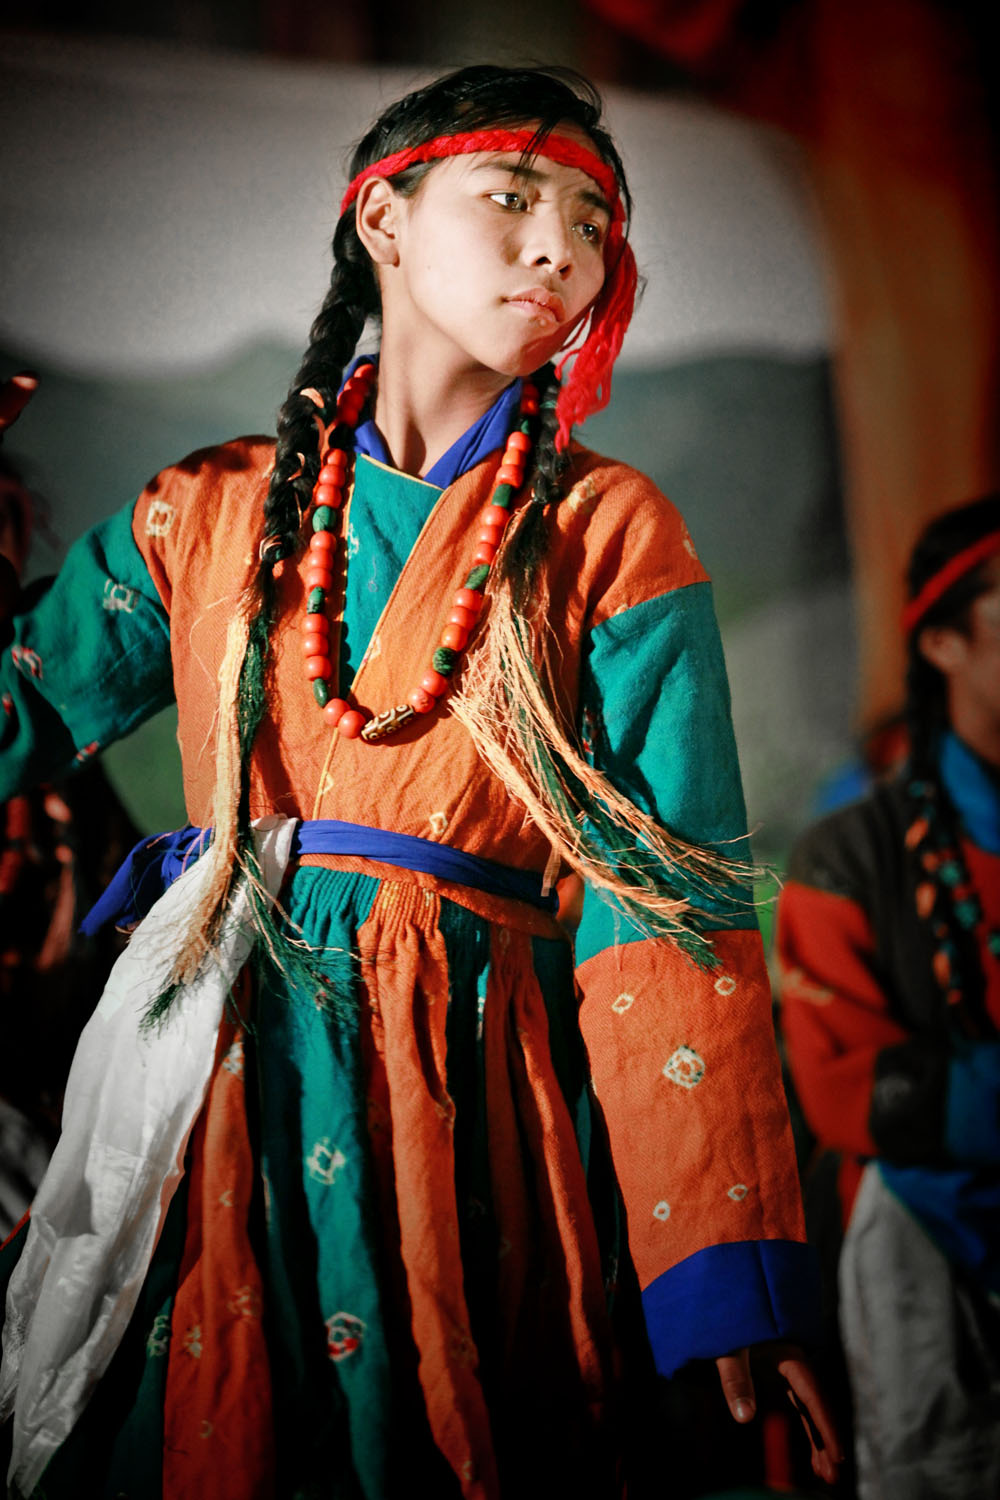 Pupil of Druk White Lotus school dancing, Shey, Ladakh